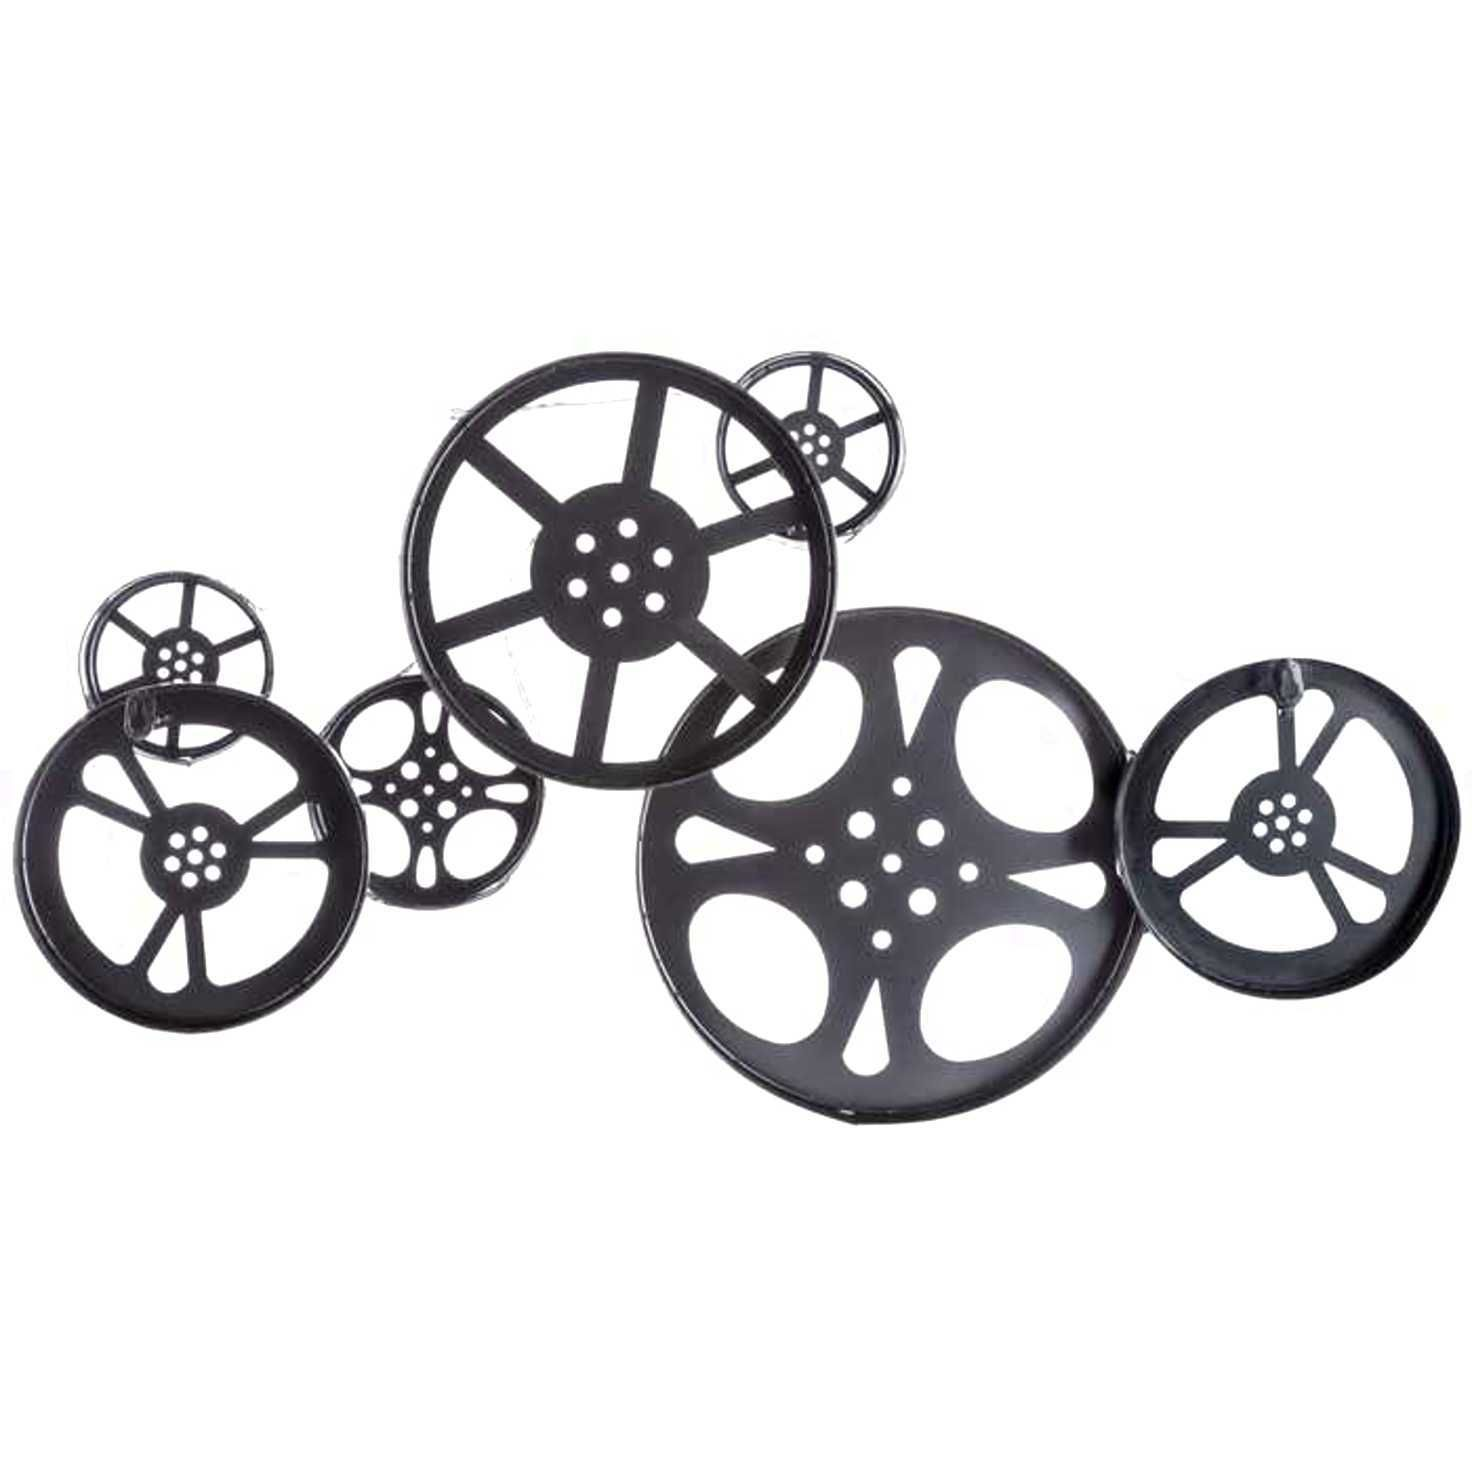 Large antique bronze metal movie reel wall art theater home decor